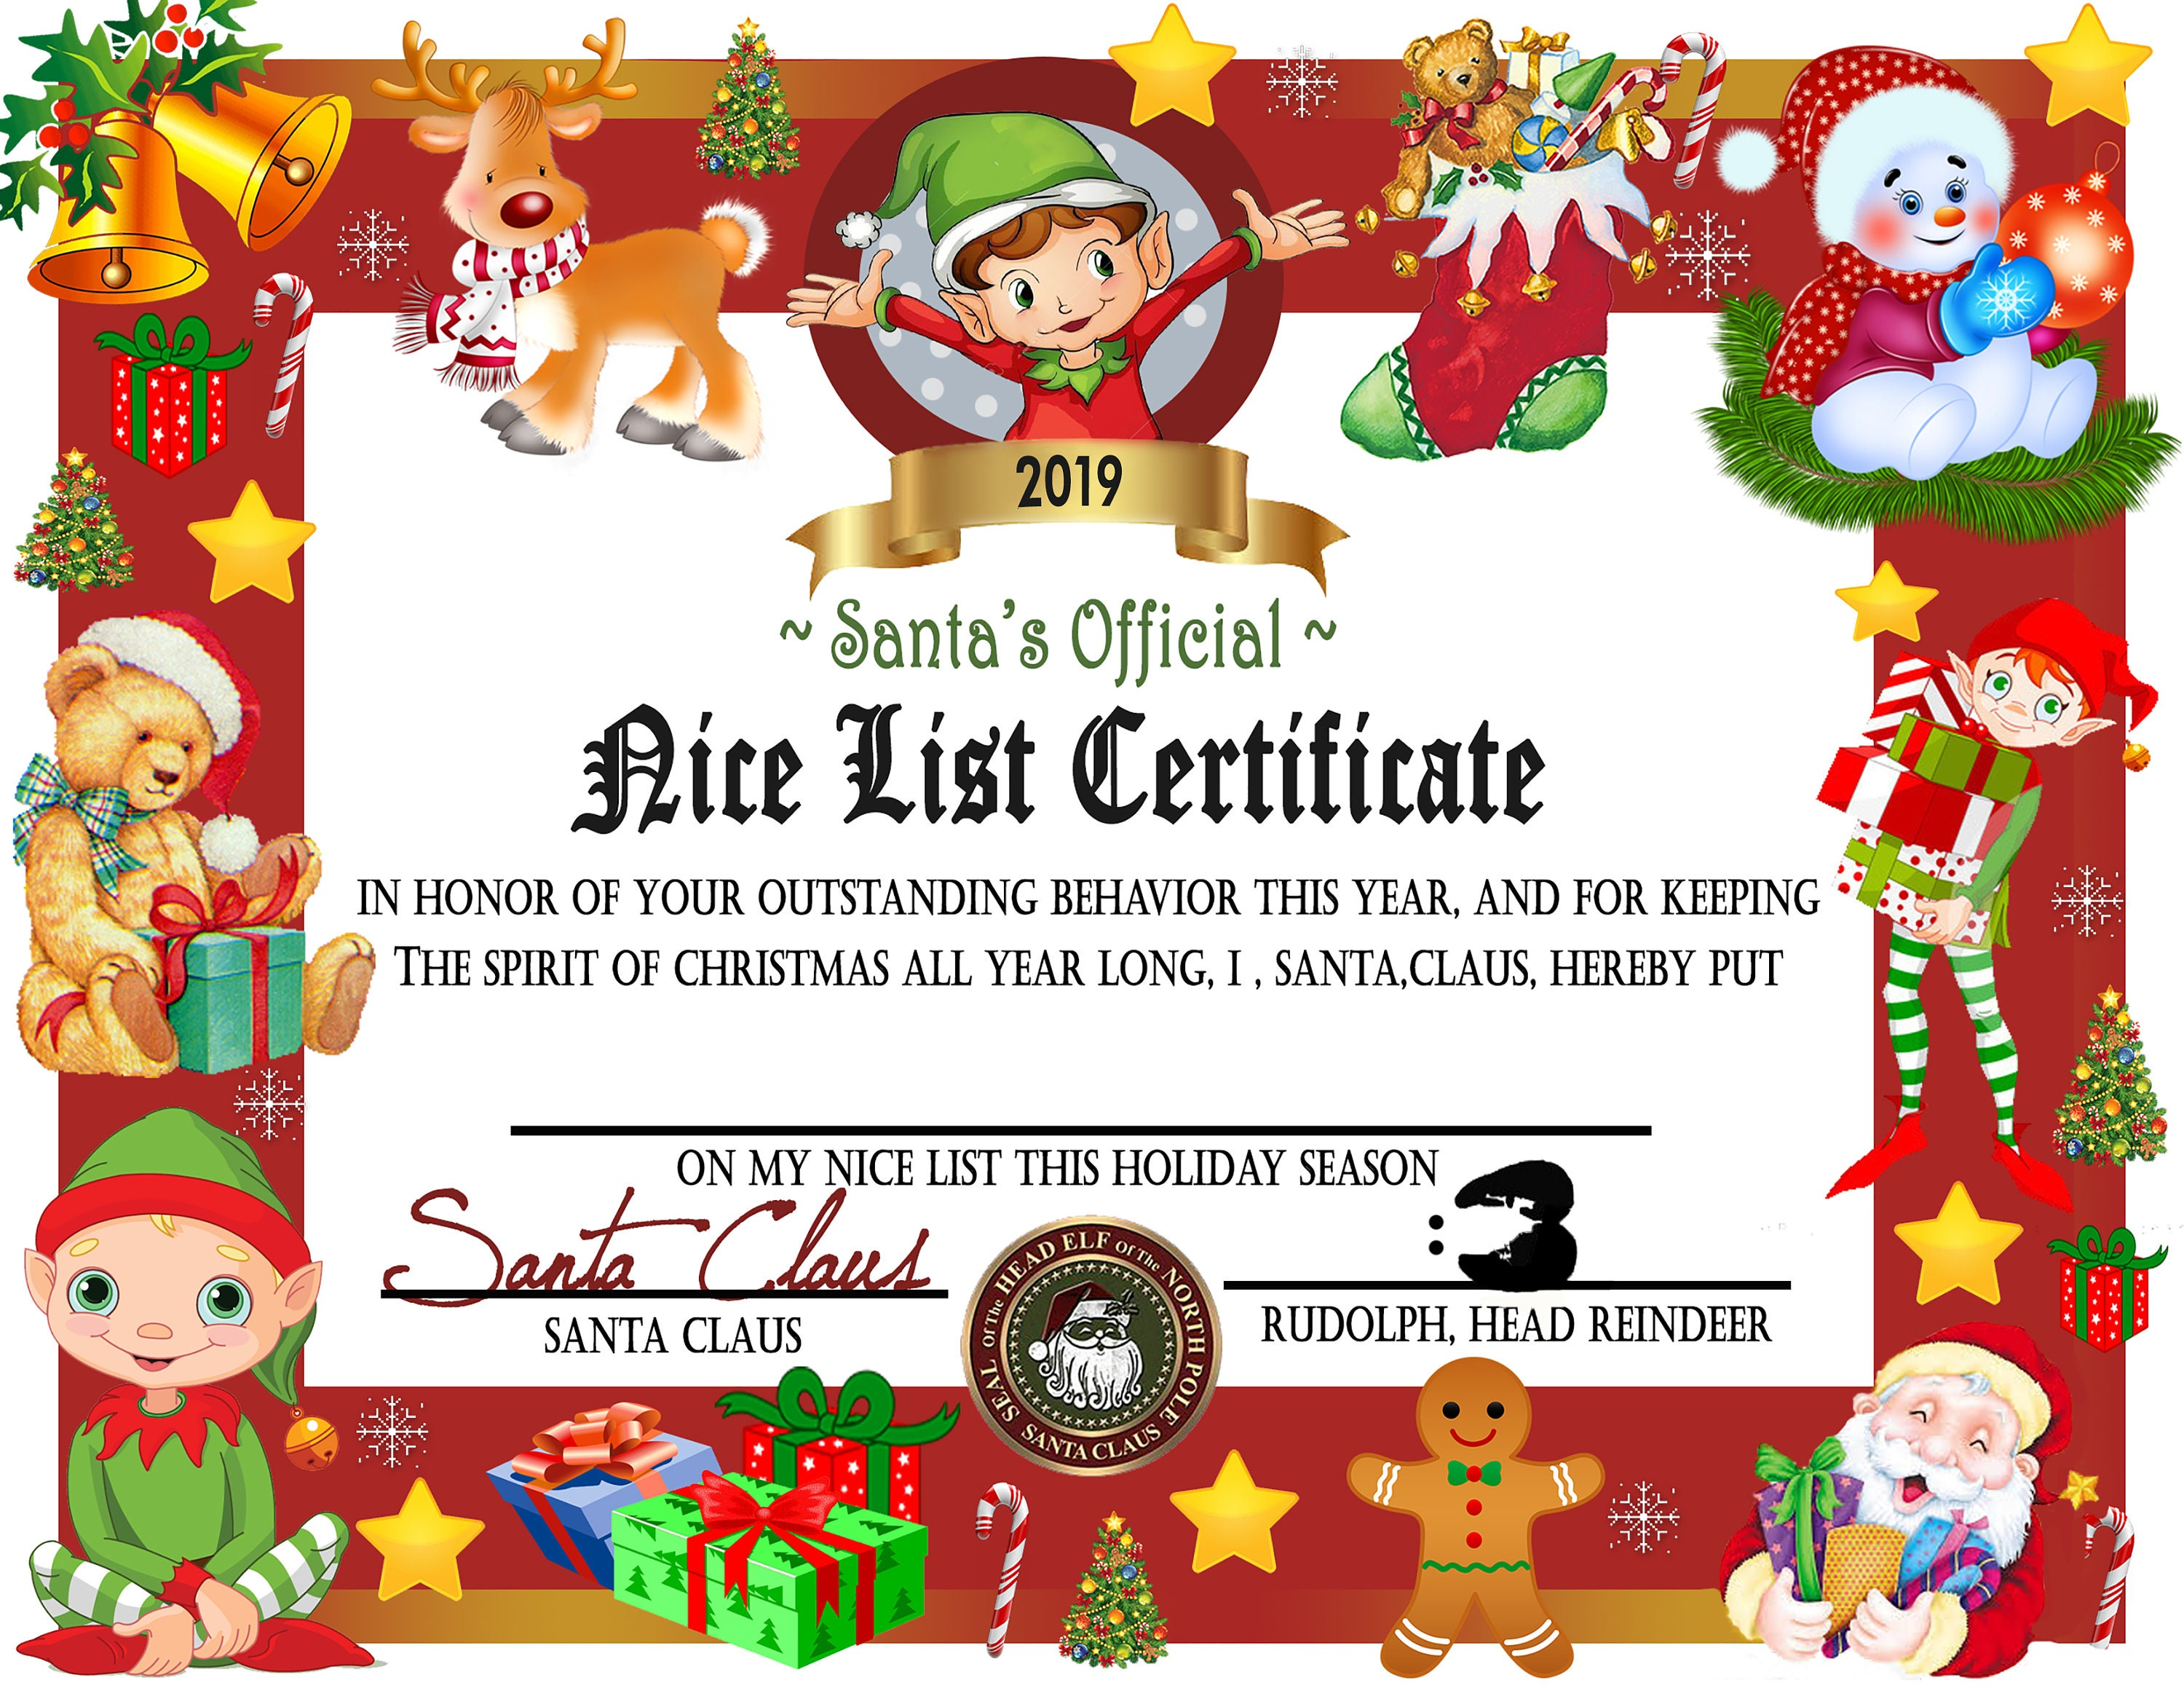 graphic relating to Printable Santa Nice List Certificate identify Printable Wonderful Checklist Certification, Quick Obtain, Good Record, Letter, Xmas Printables, Printable Certification, Santa Record Do it yourself PRINTABLE